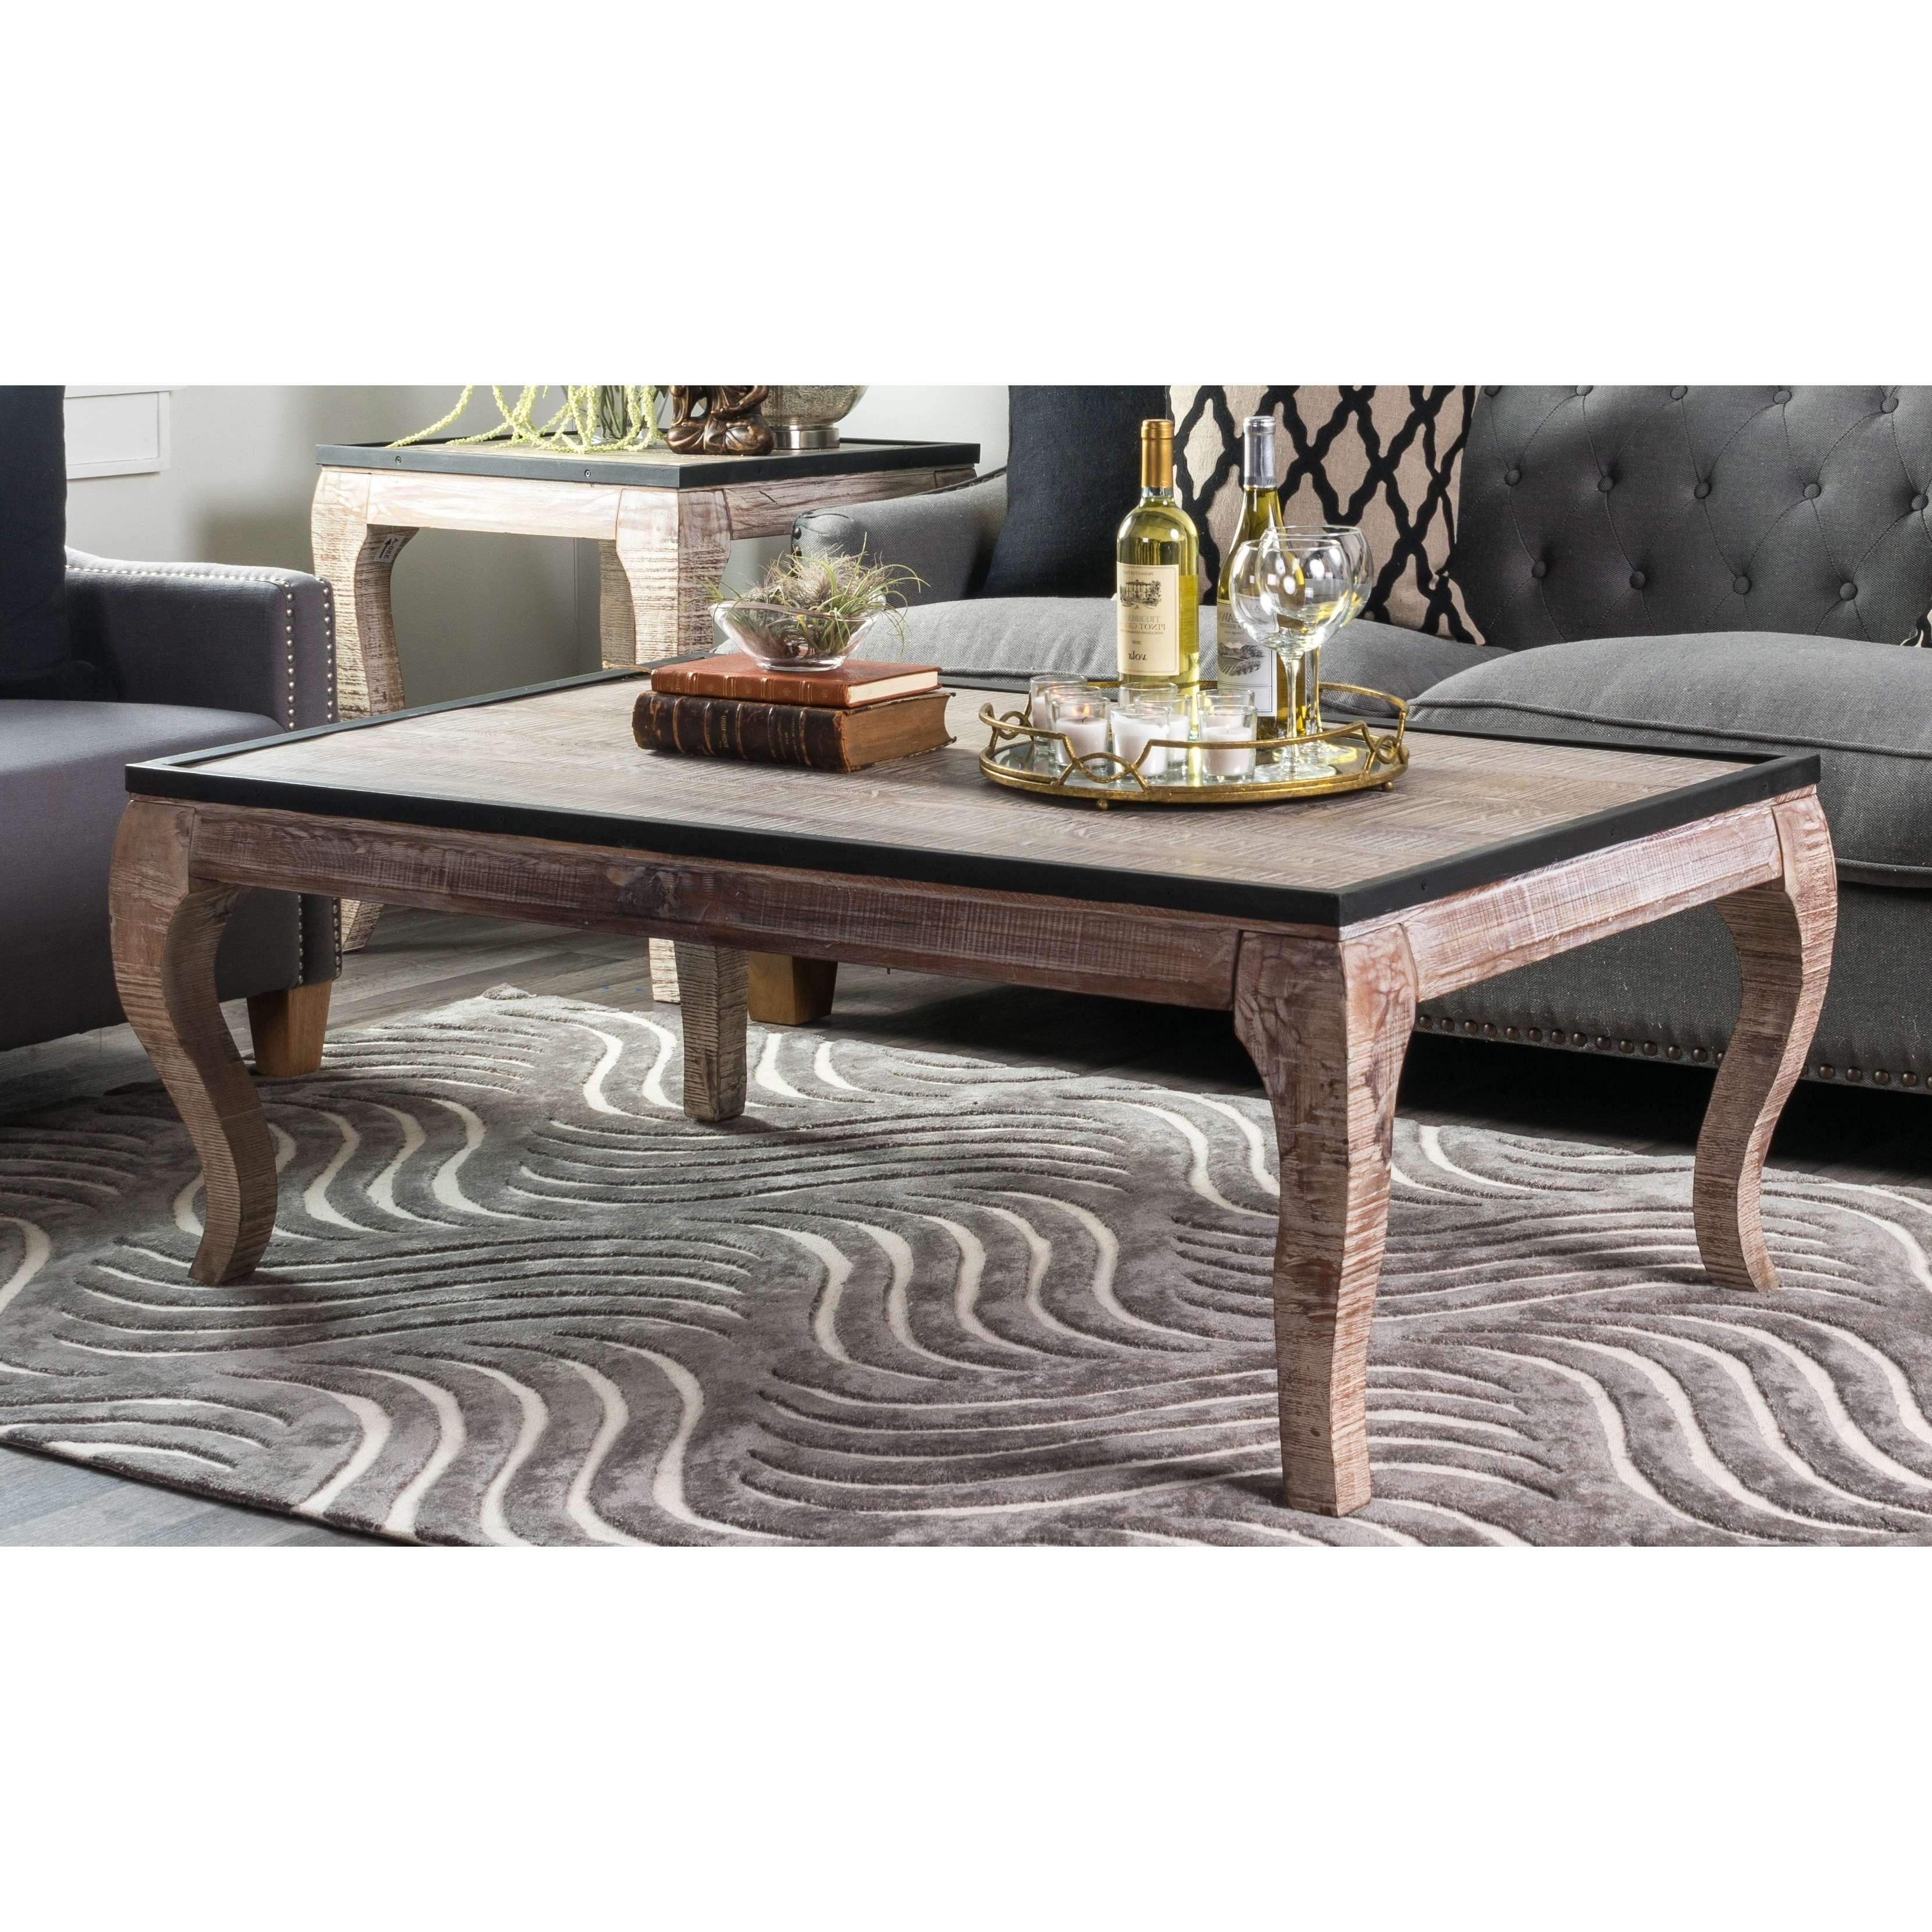 Kosas Home Cosmo Wood With Iron Trim Coffee Table – Free Shipping Regarding Most Current Cosmo Coffee Tables (View 19 of 20)